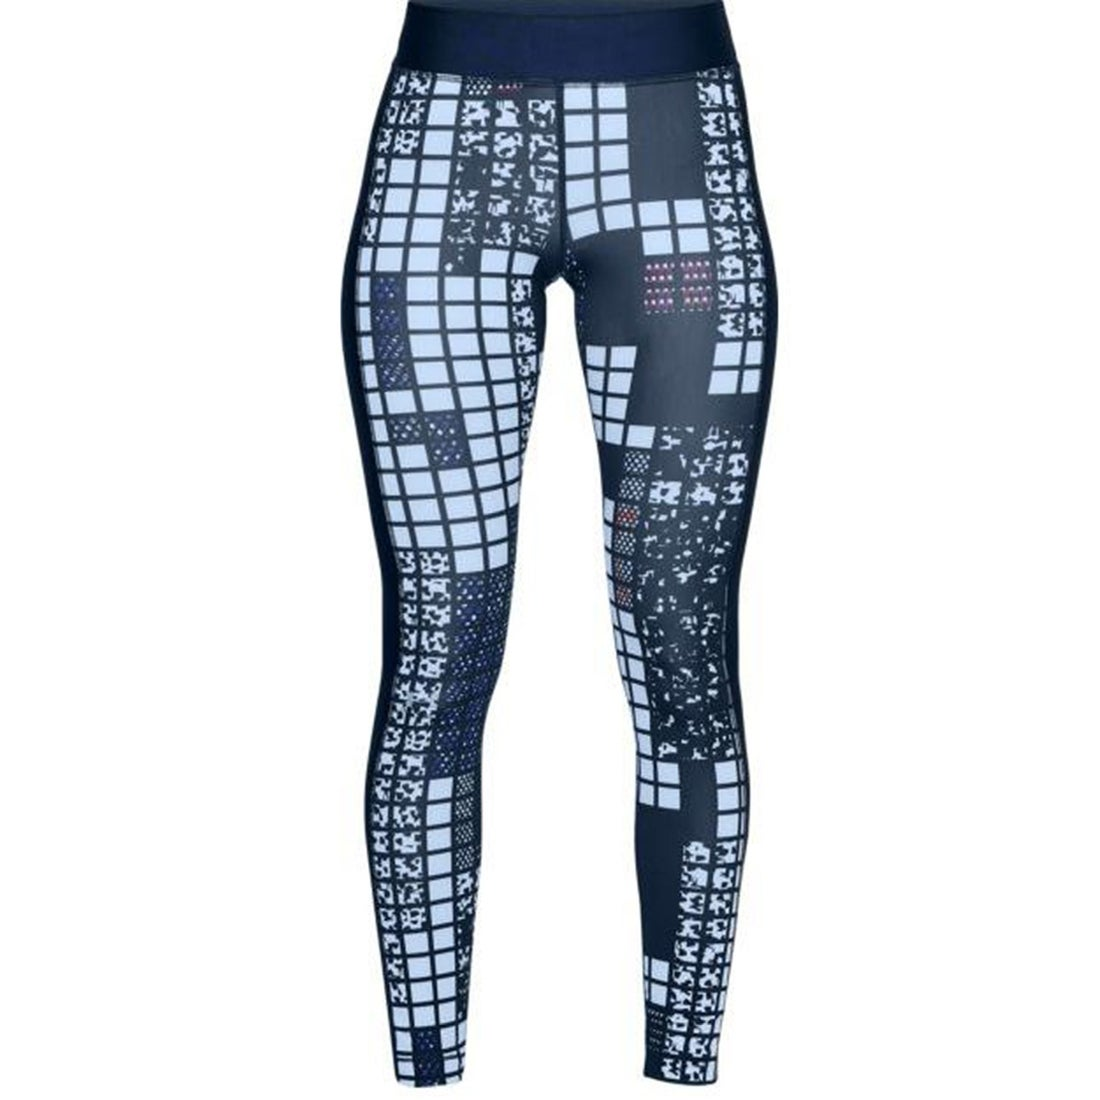 66d72ee709d4e Shop Under Armour Women's HeatGear Armour Printed Legging, Academy/Metallic  Silver, M - Free Shipping On Orders Over $45 - Overstock - 22302055